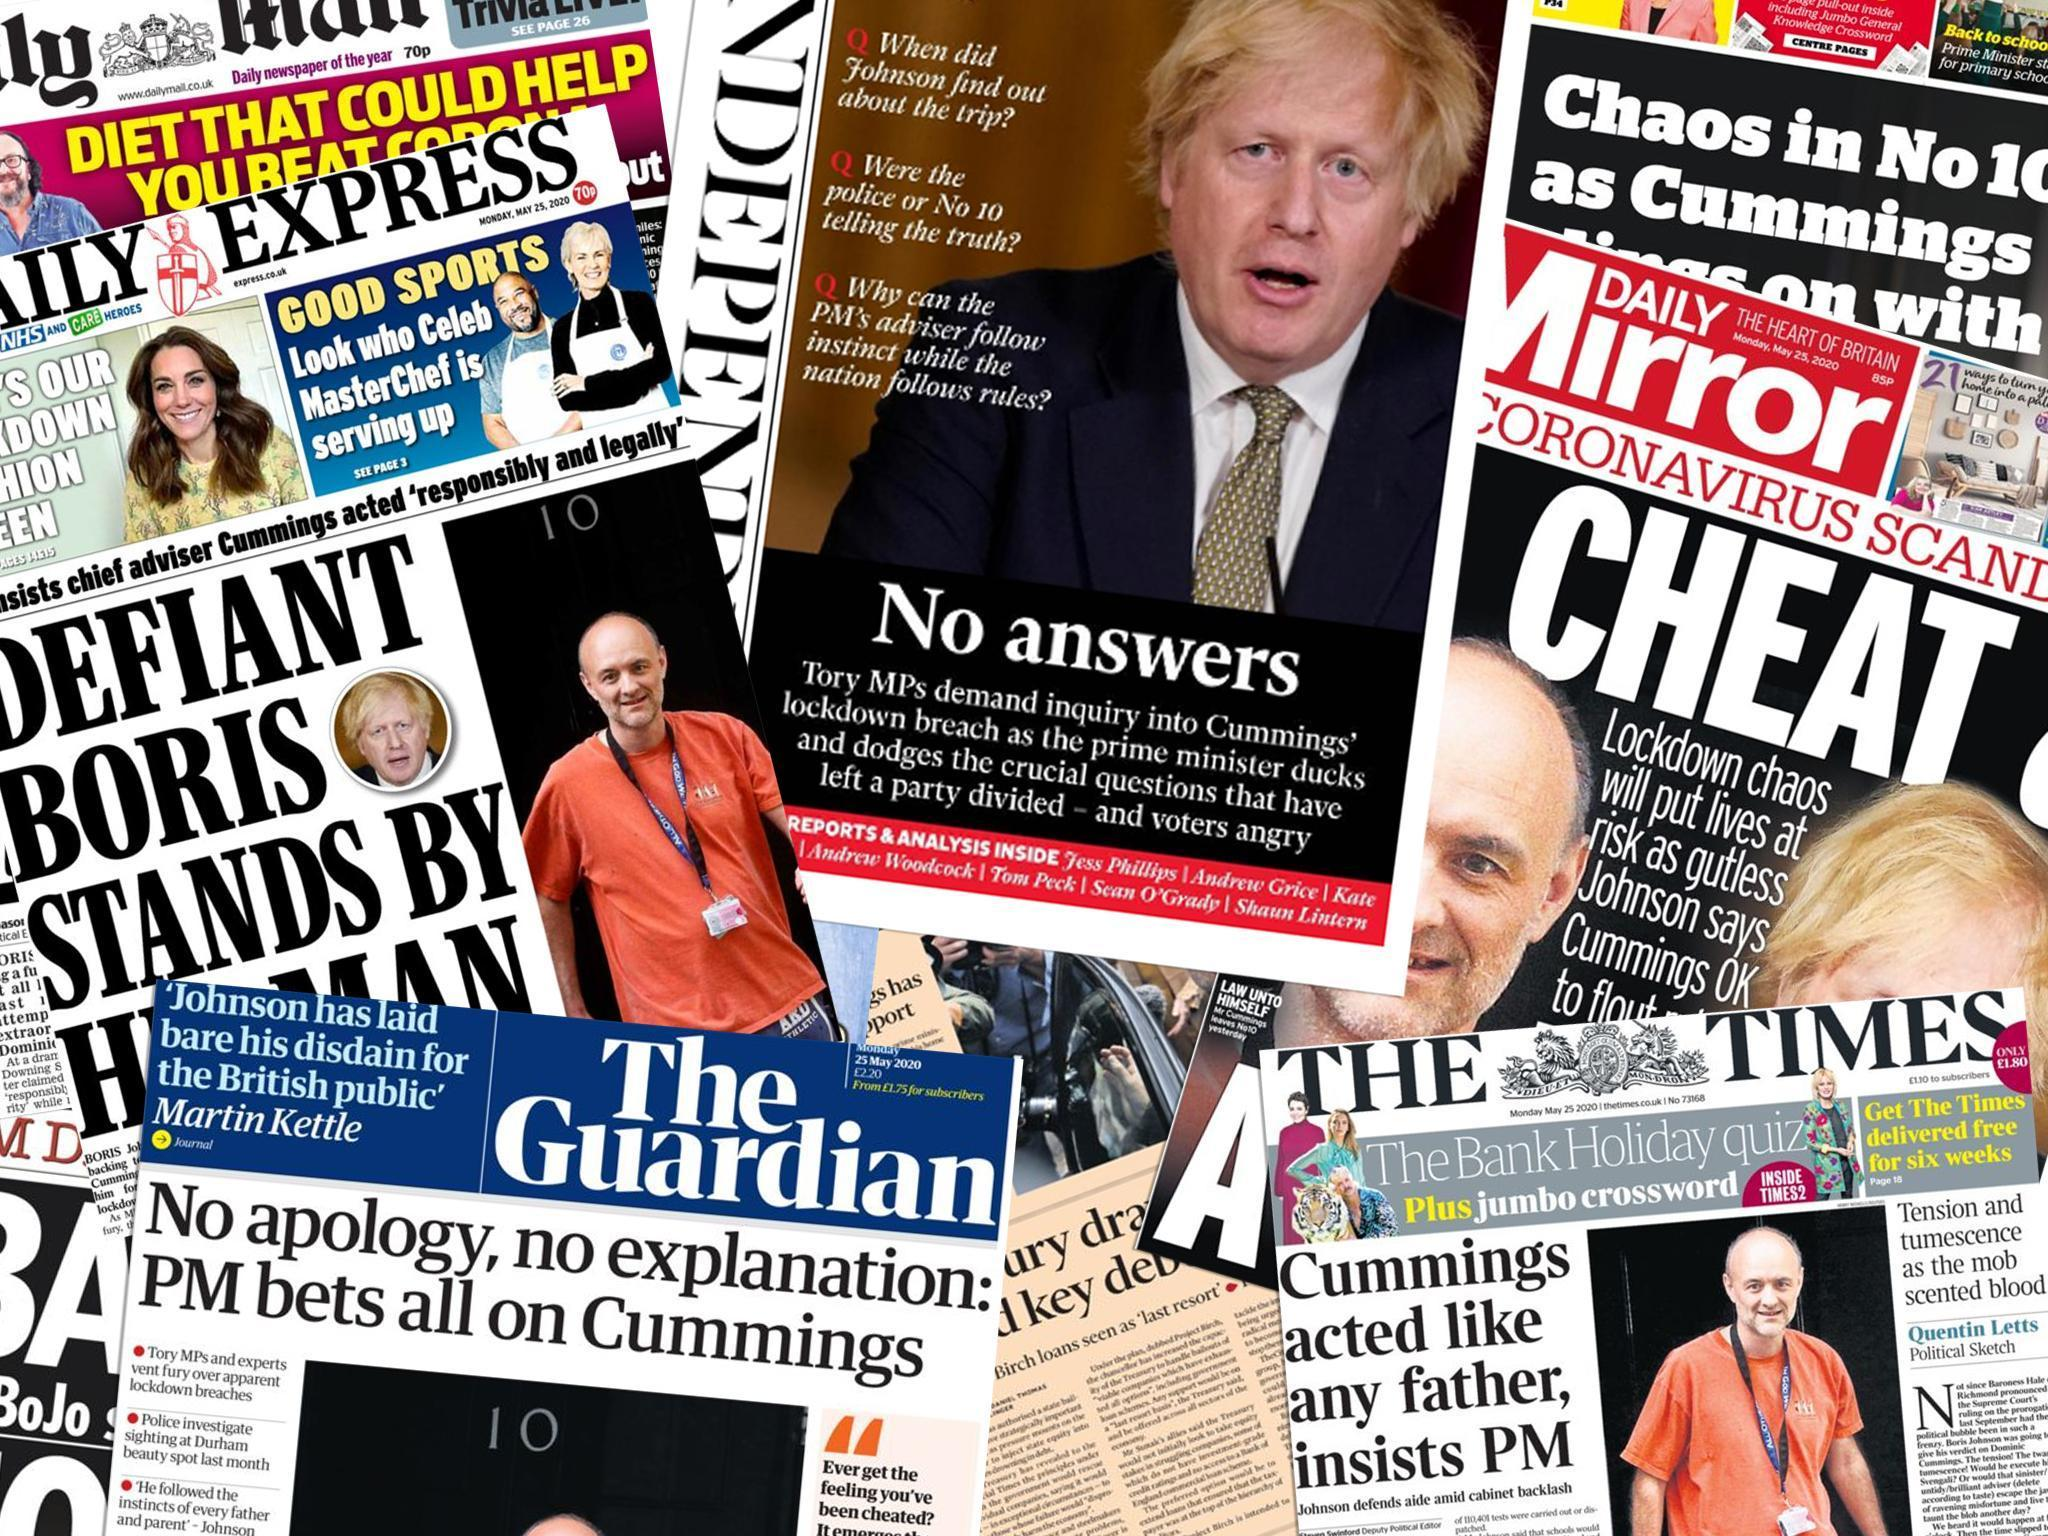 'What planet are they on?' Newspapers react after Johnson stands by Cummings